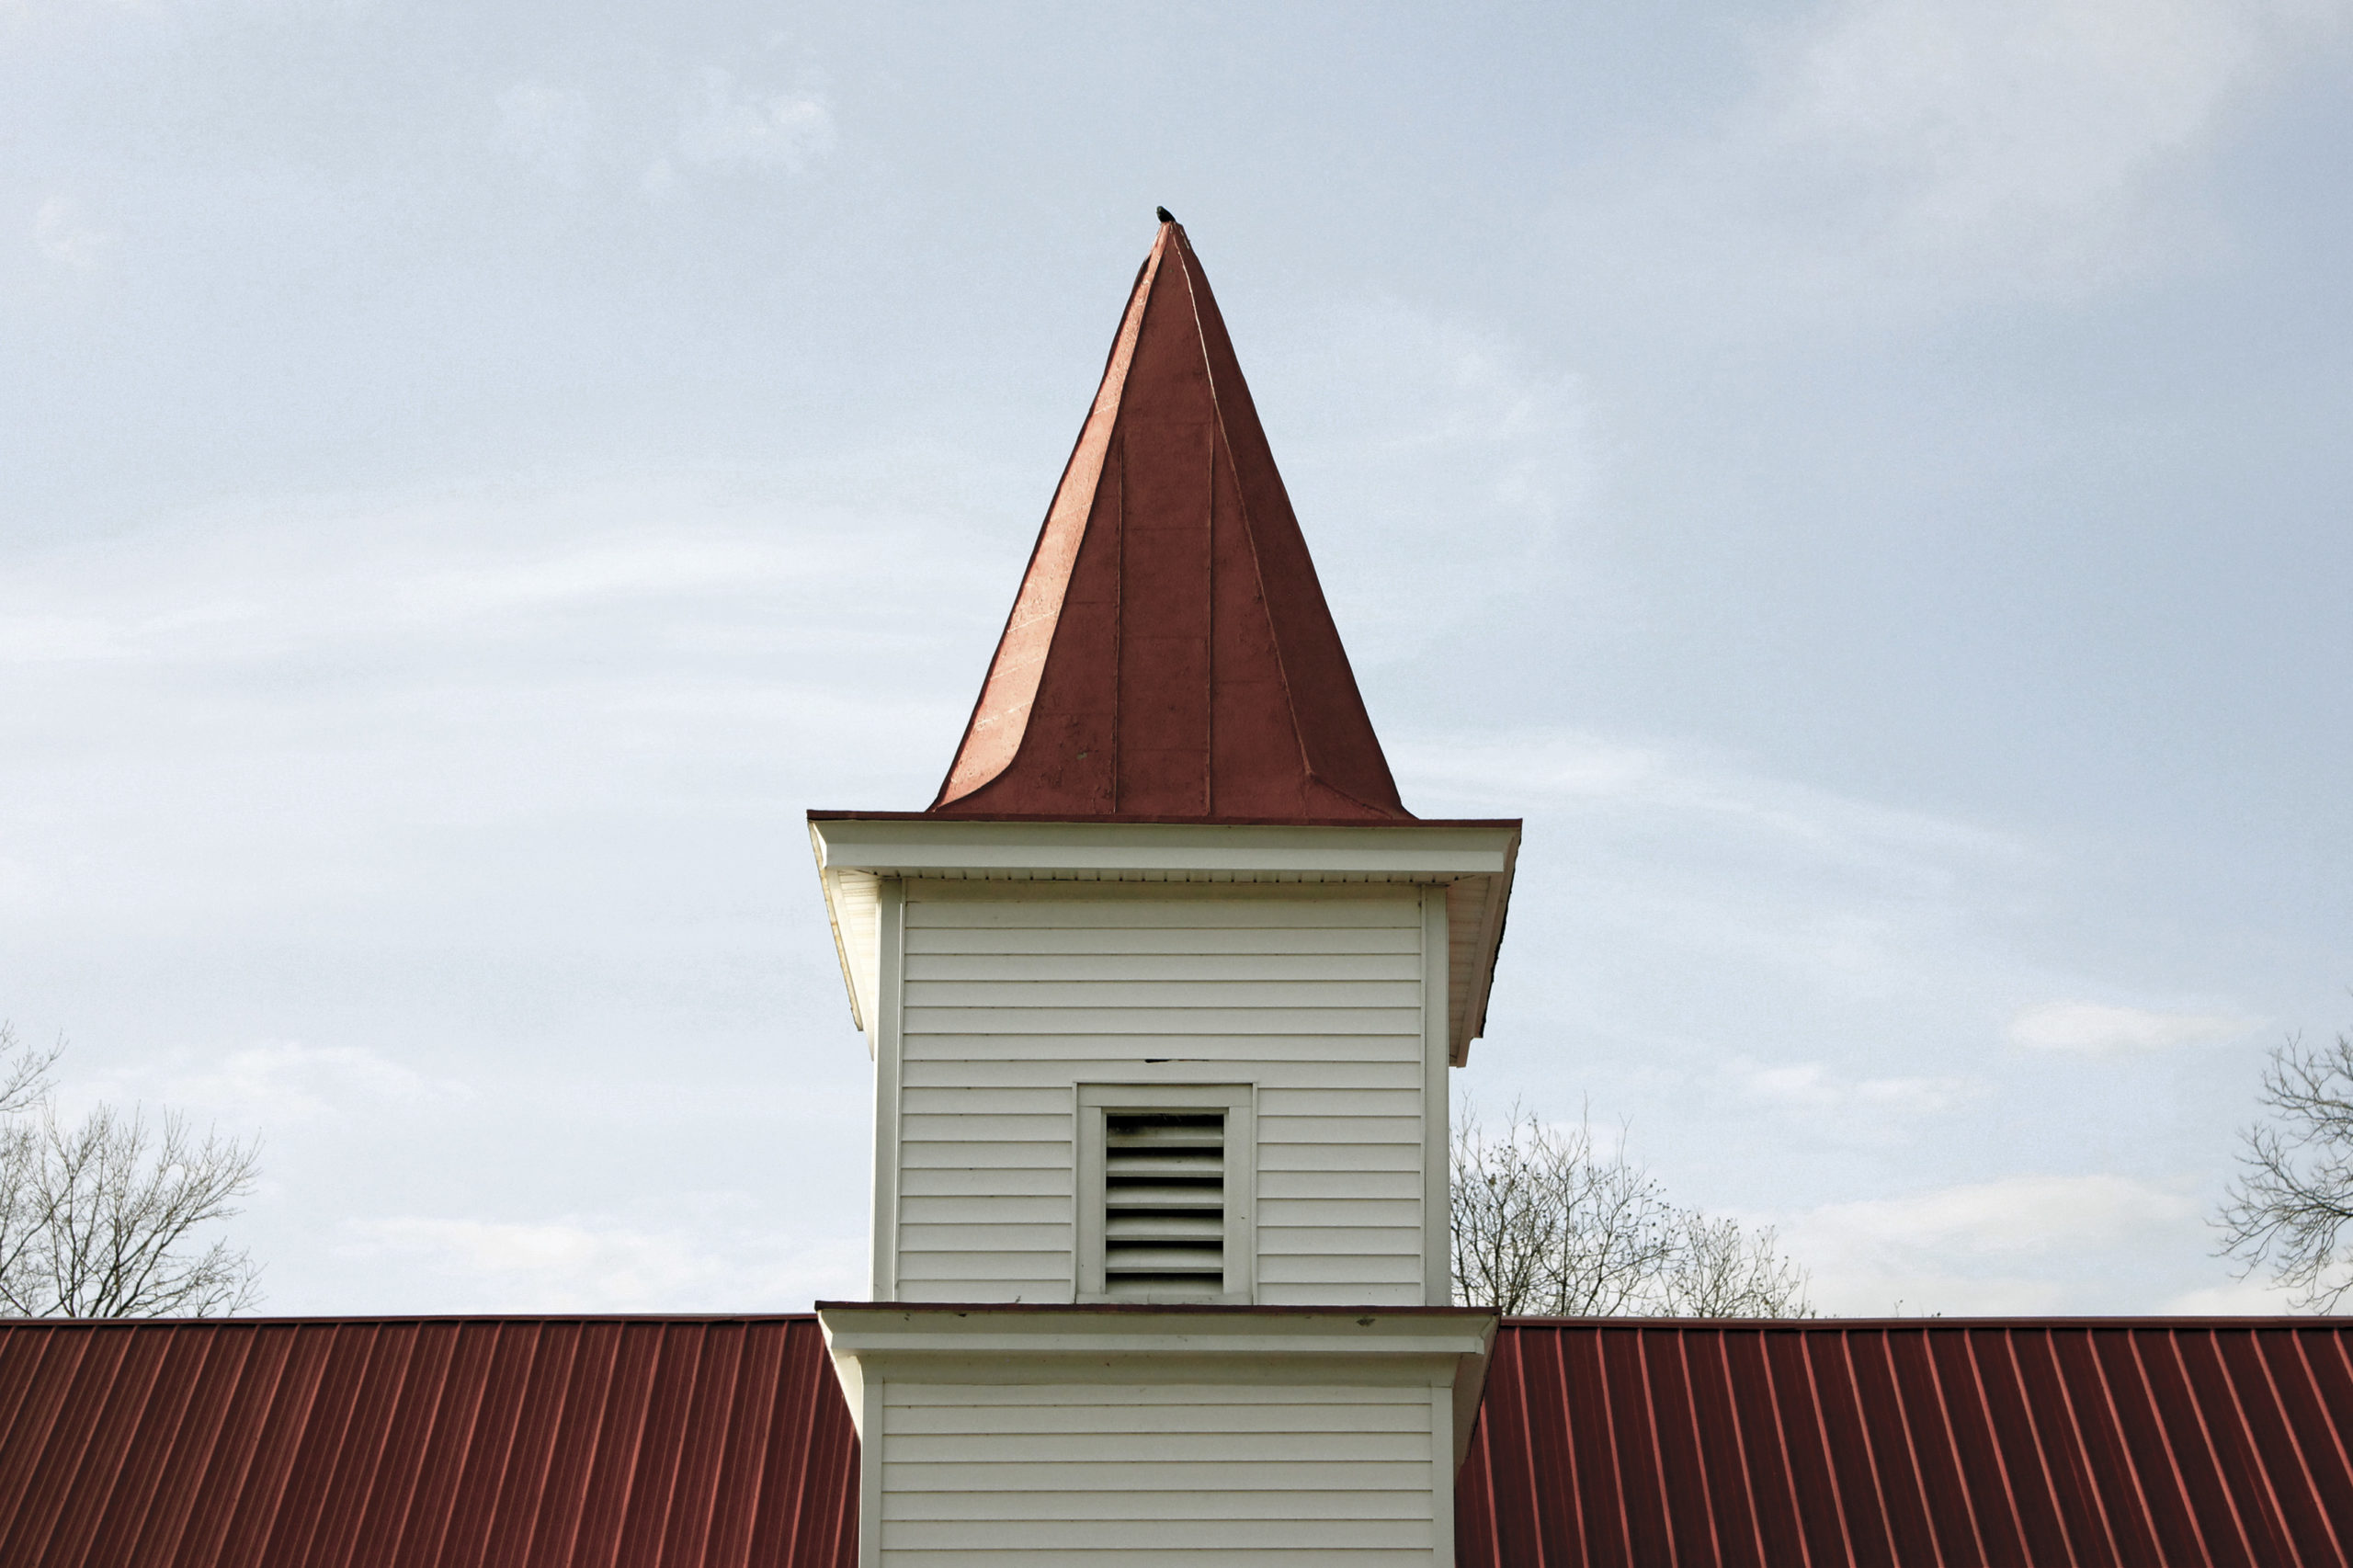 Crow on Steeple, West Point